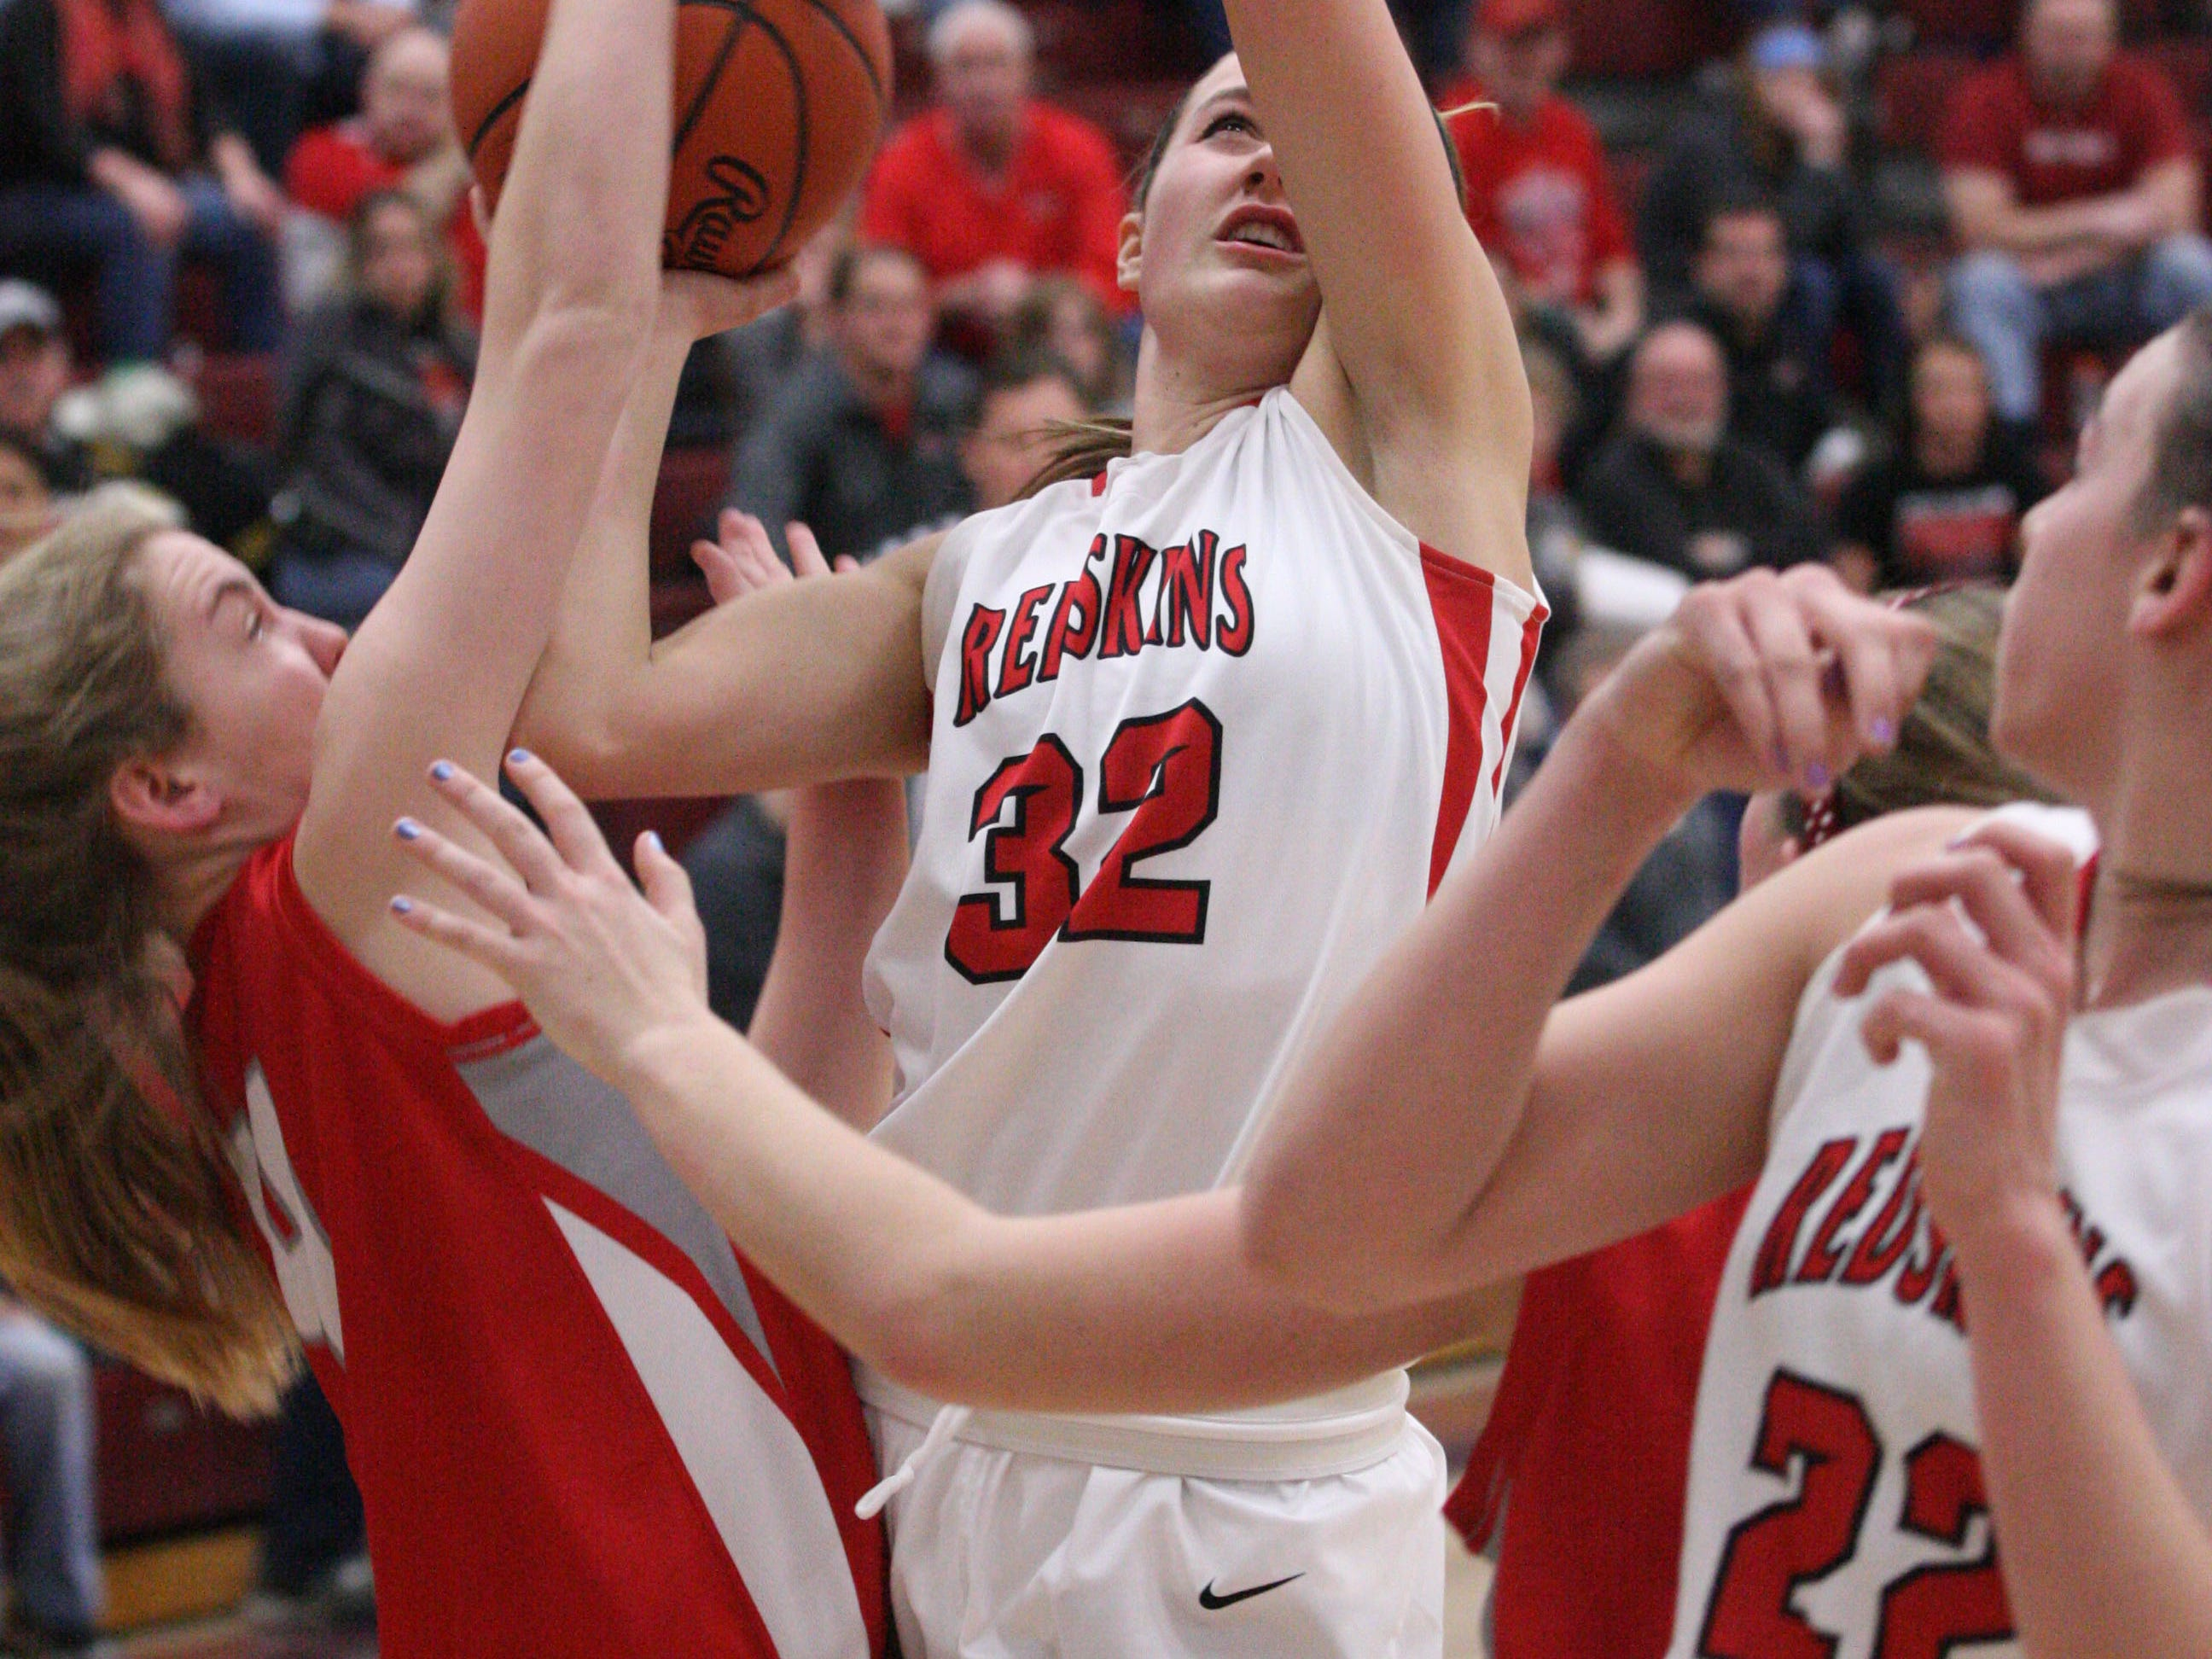 Port Clinton's Sydney Alexander is fouled by Bowling Green's Ally Hart-Nichols while trying to power up a shot Saturday.